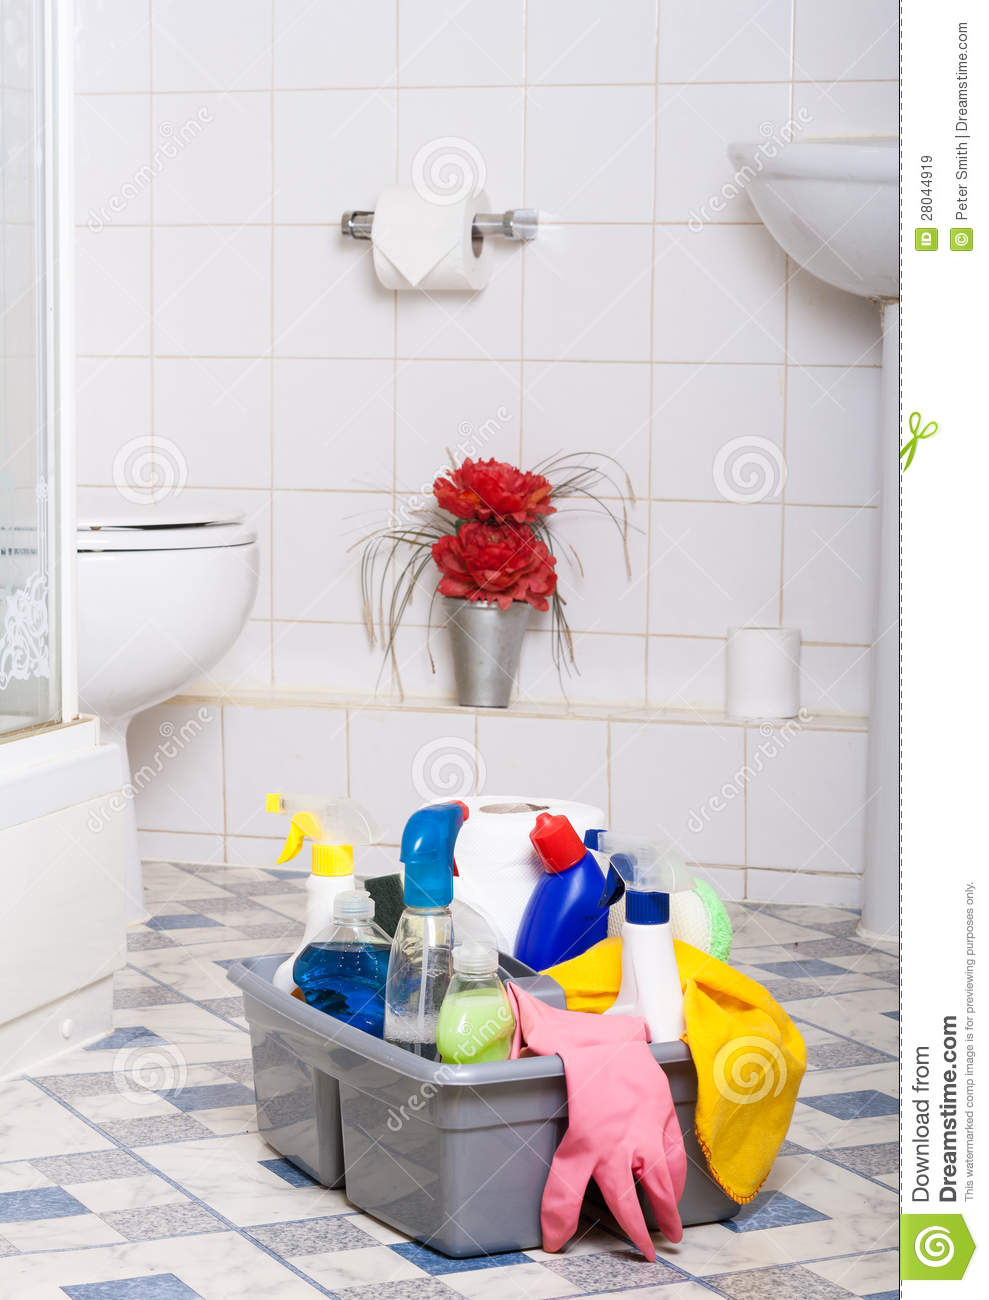 Cleaning Bathroom Clean Kitchen Room Cleaner Wipe Tiles